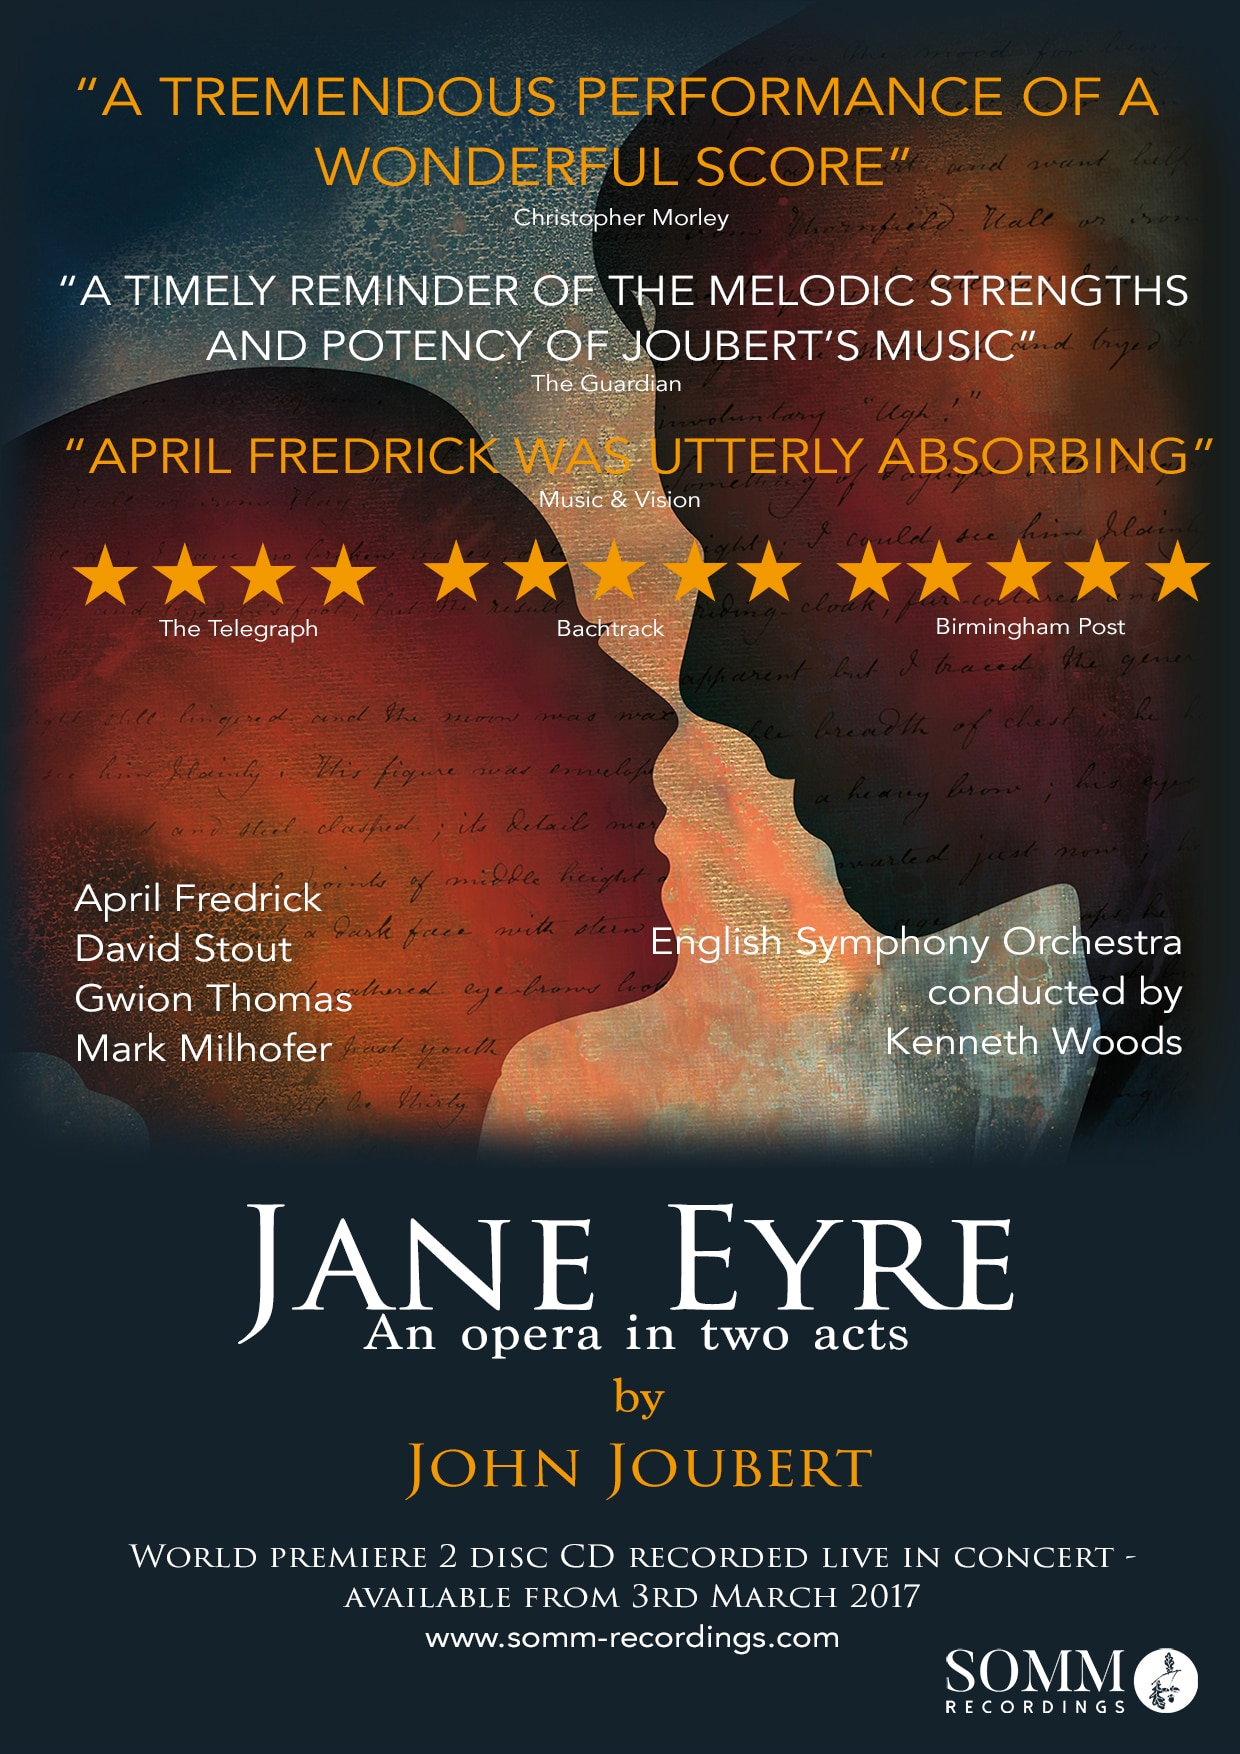 "ESO Earns Classical Music Magazine ""Premiere of the Year"" for Second Year in a Row with John Joubert's Jane Eyre"